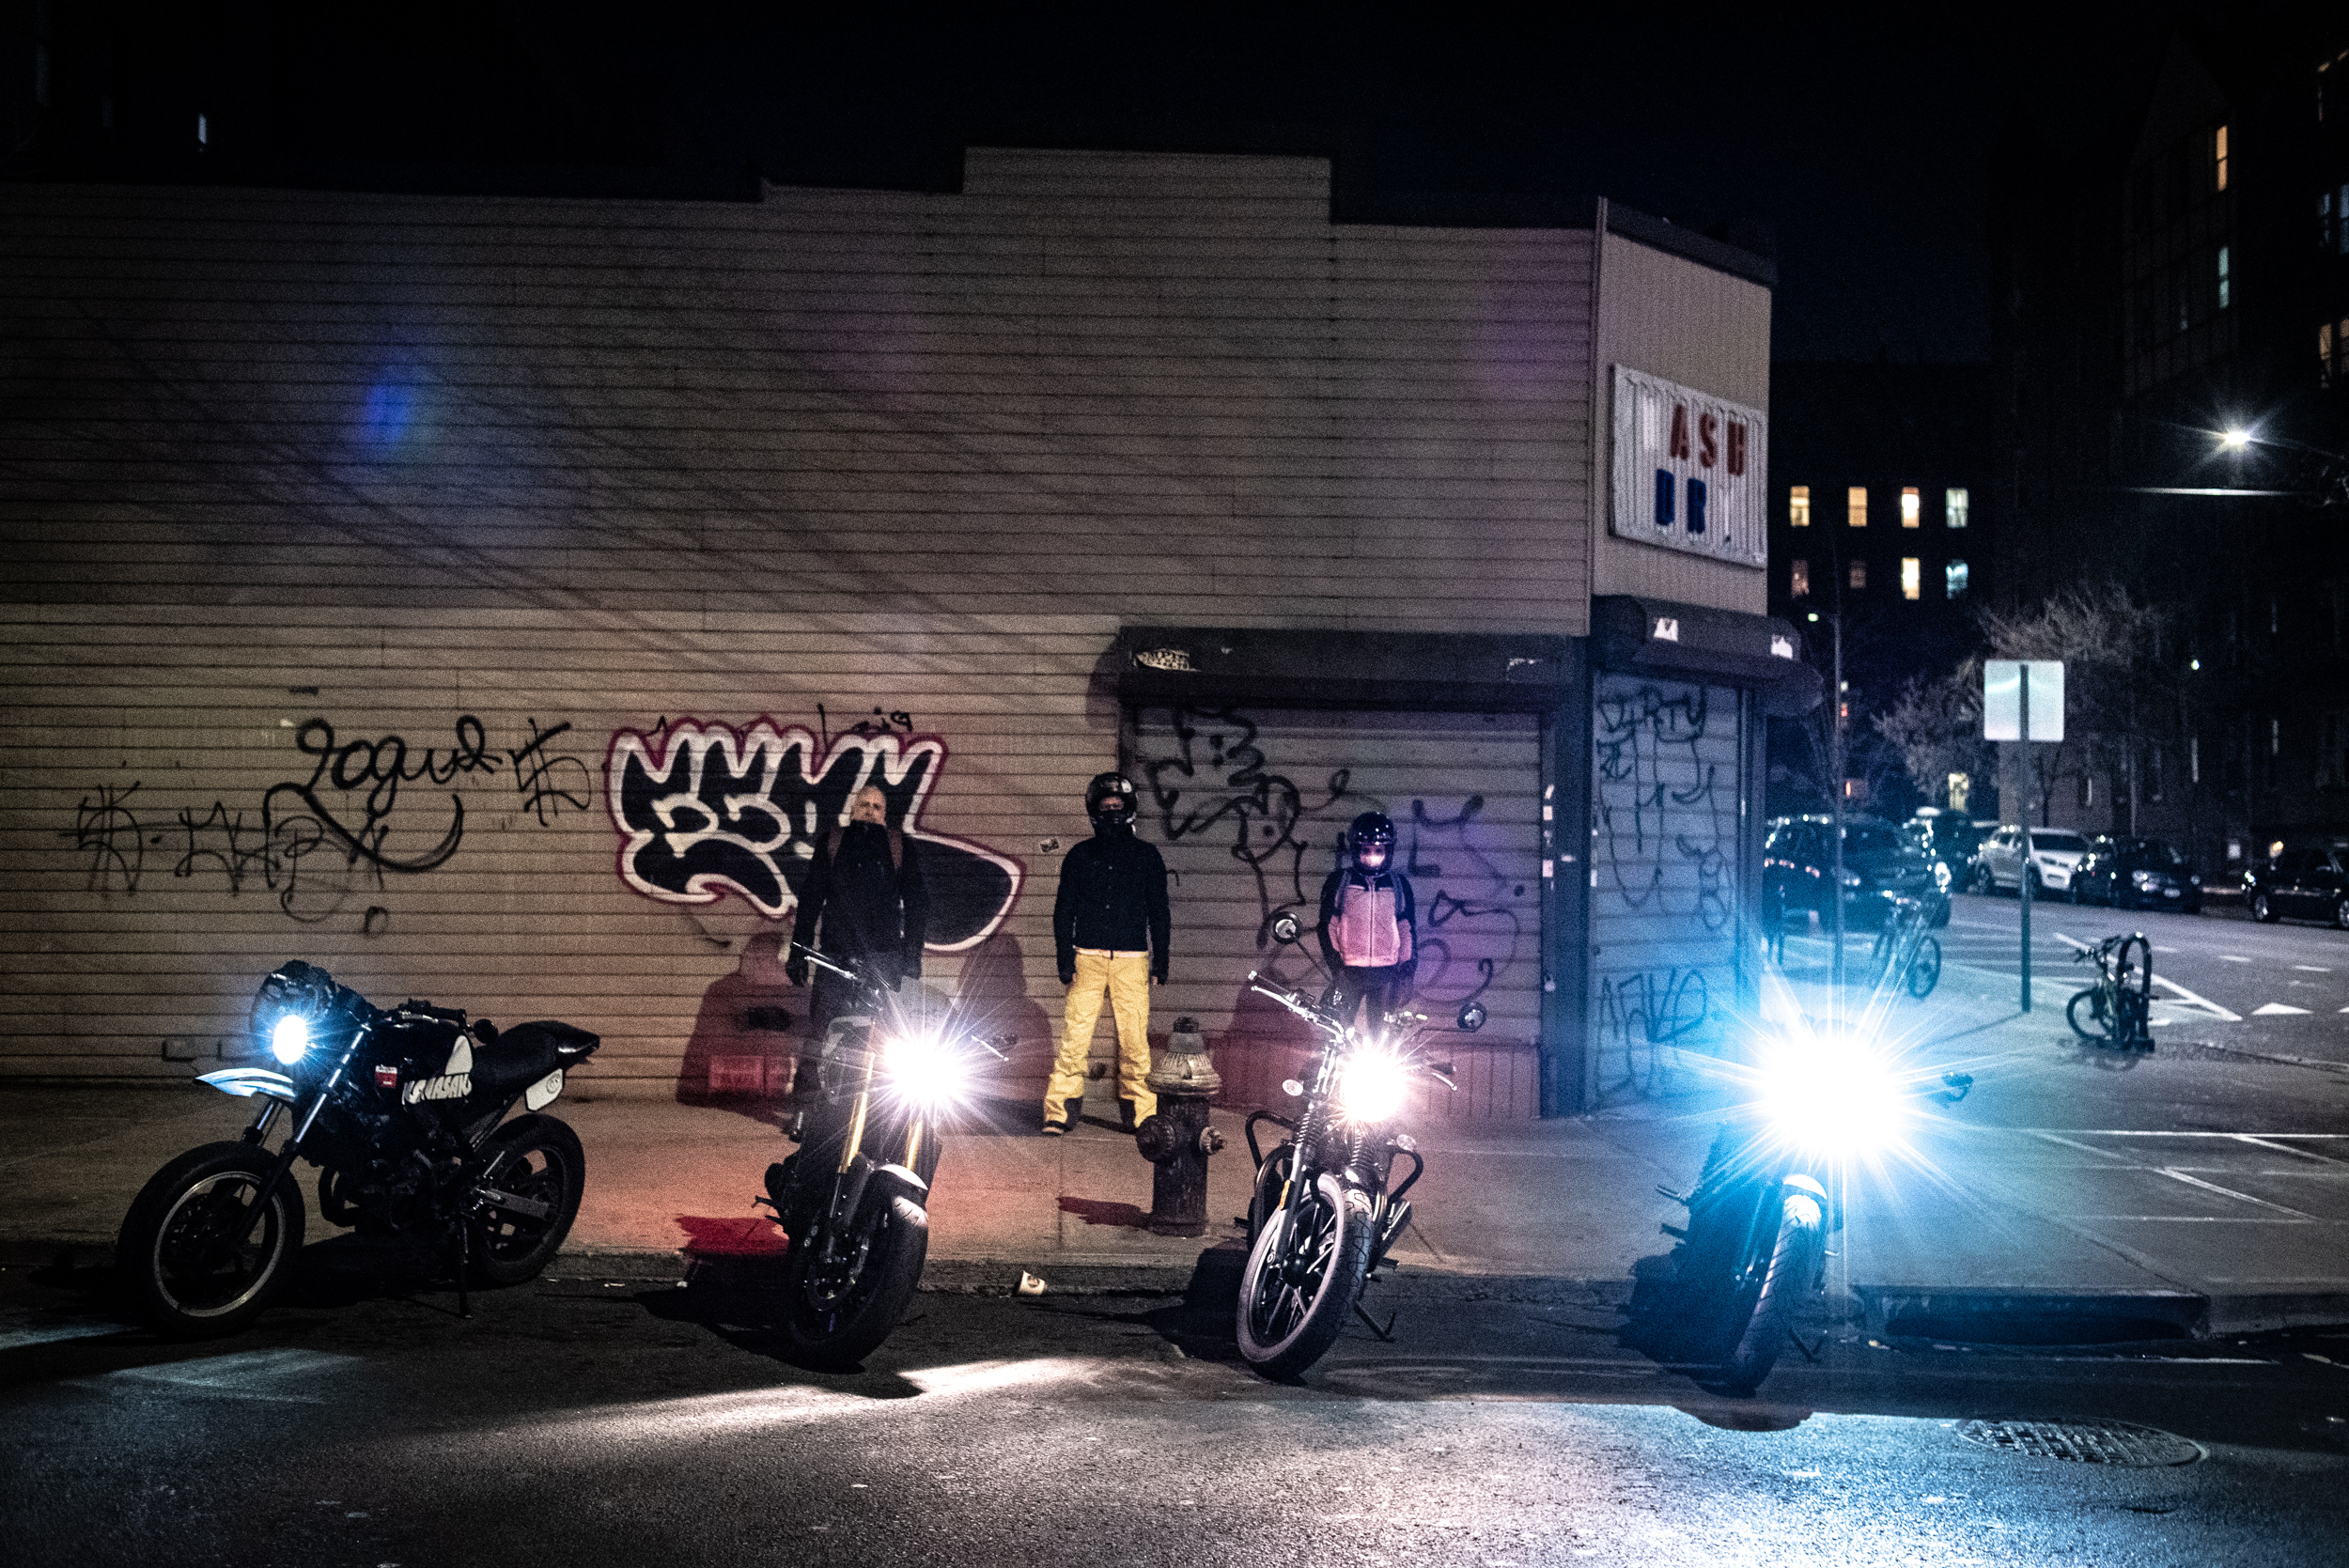 Motorcyclists lined up on a curb in Queens, New York